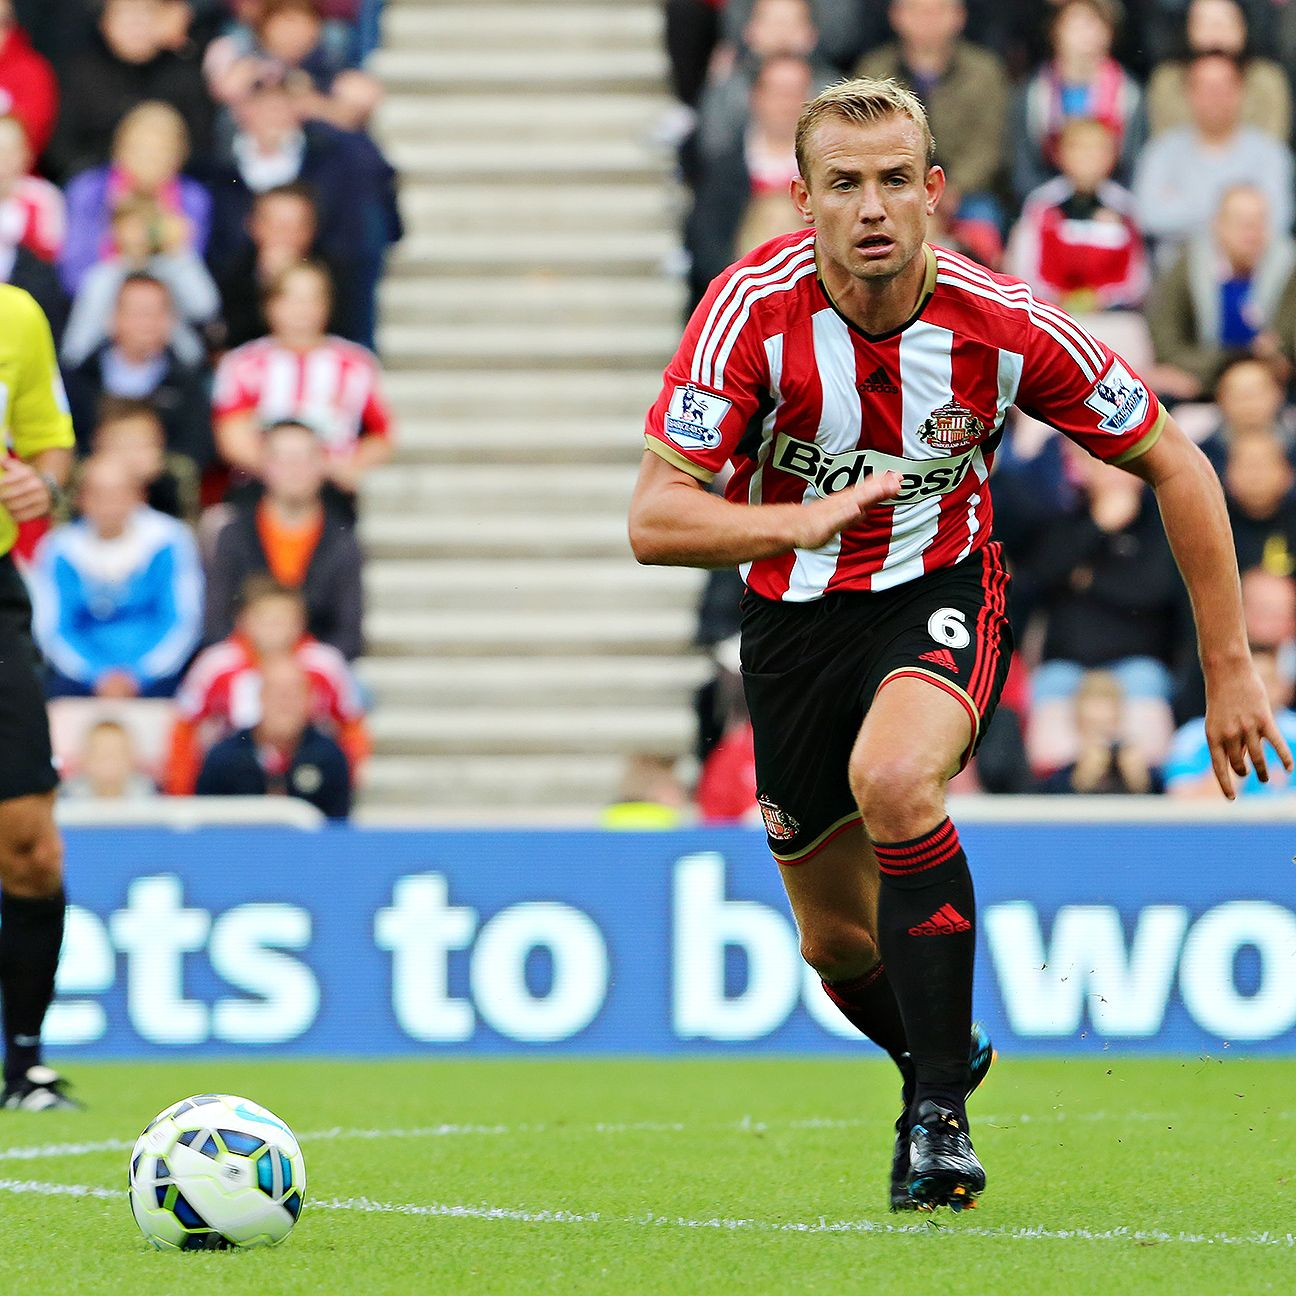 Known mainly for his accumulation of cards, Lee Cattermole's passing is an unheralded part of his game.